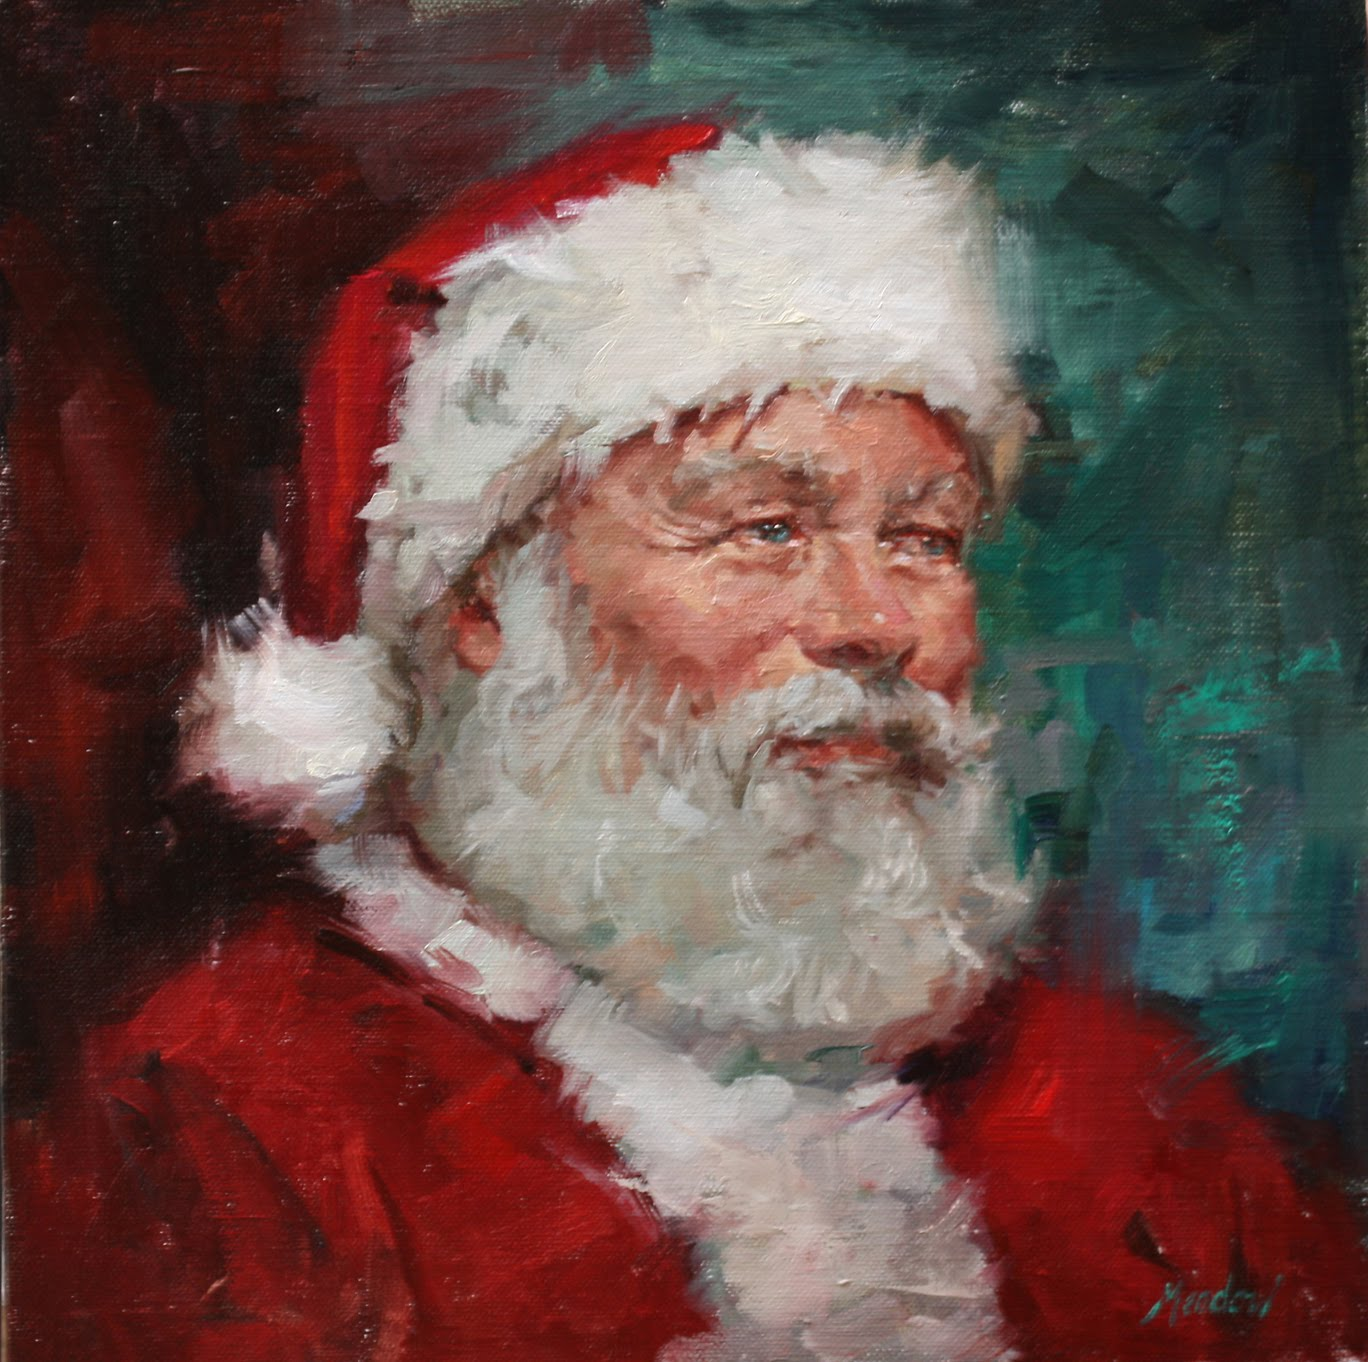 Duchess trading dueling santas for Christmas images paintings